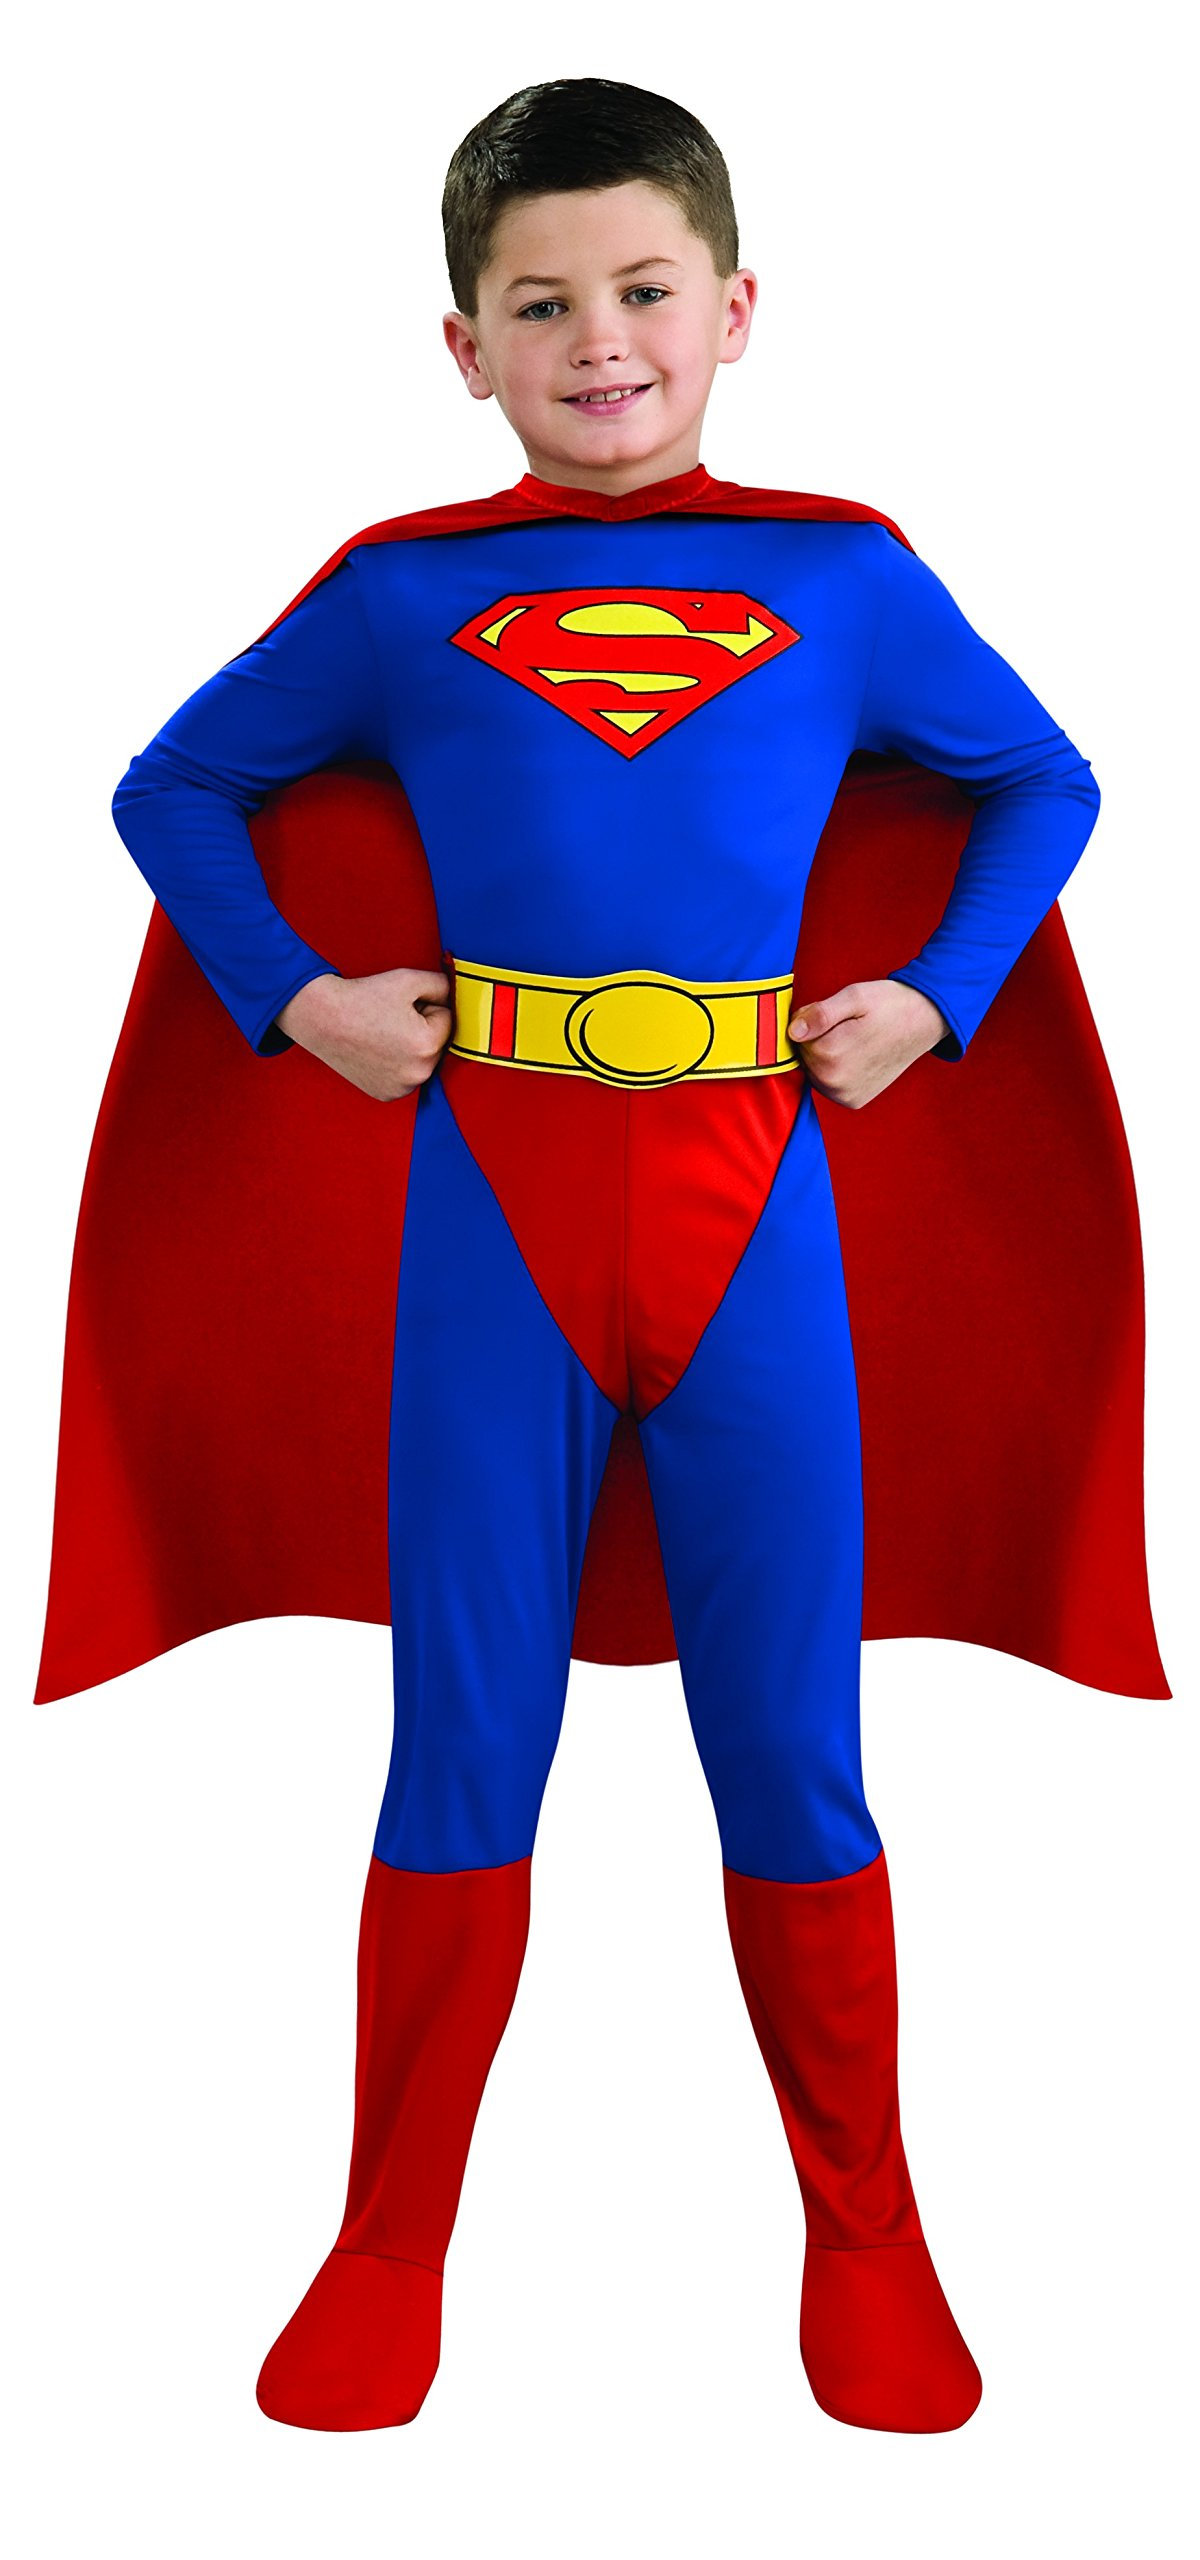 Rubie's Superman Child's Costume, Toddler by Rubie's (Image #1)